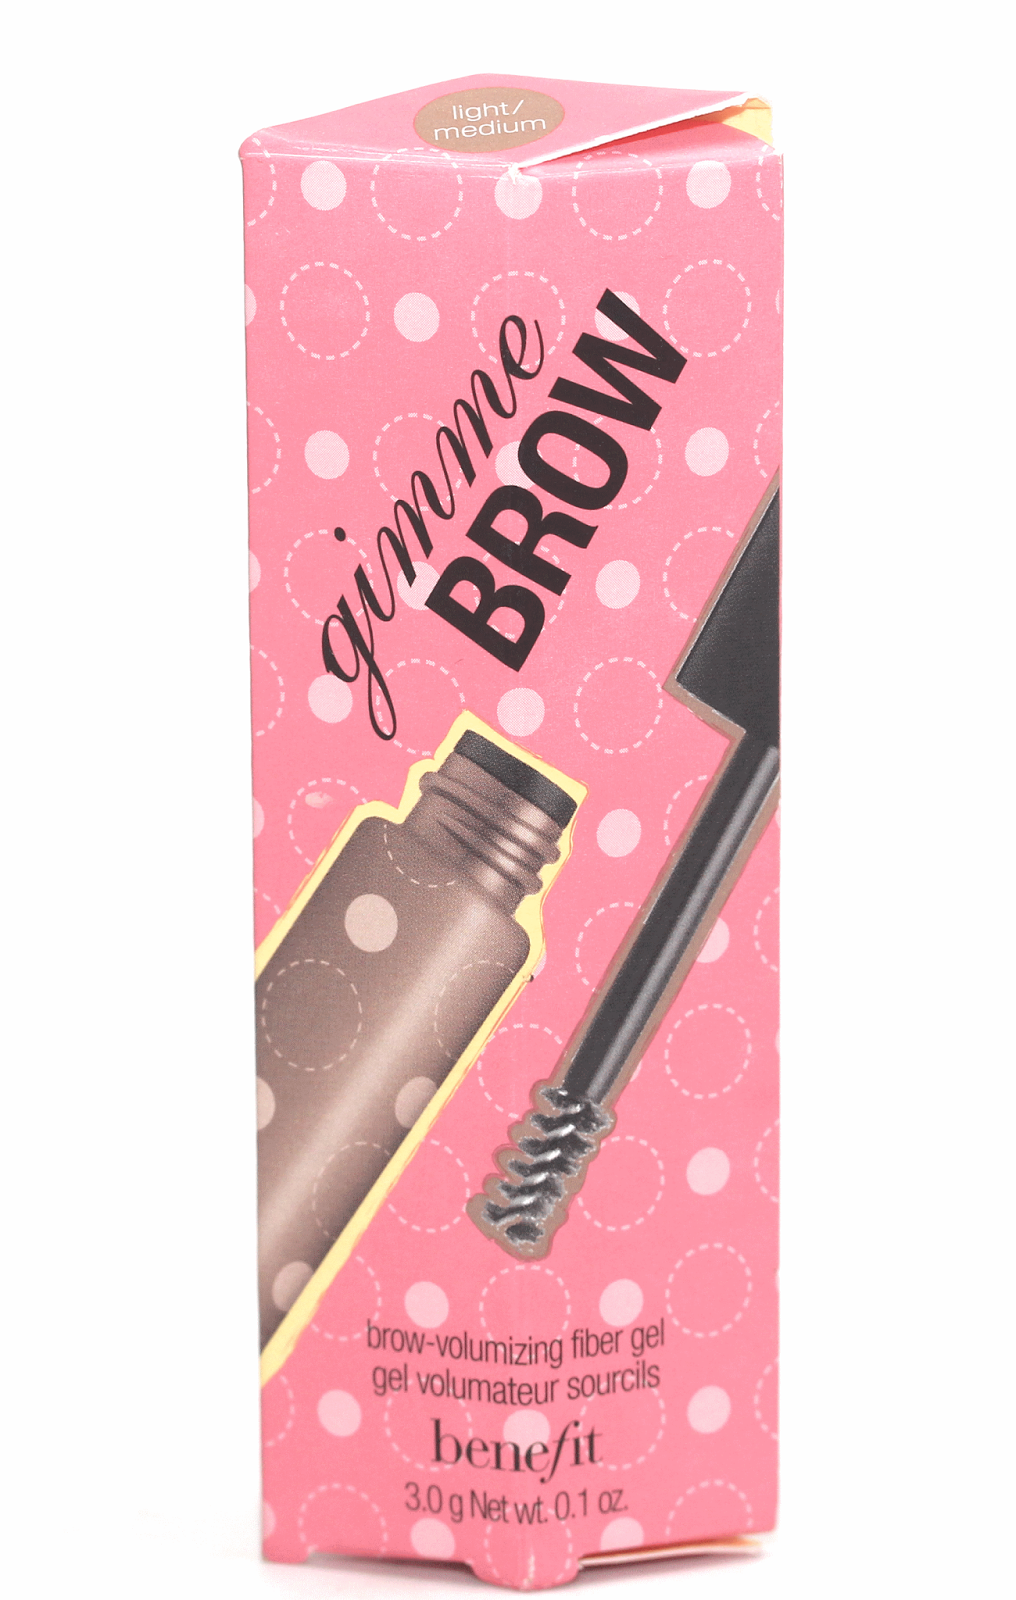 Gimme More Brow! Gel Set by Benefit #12